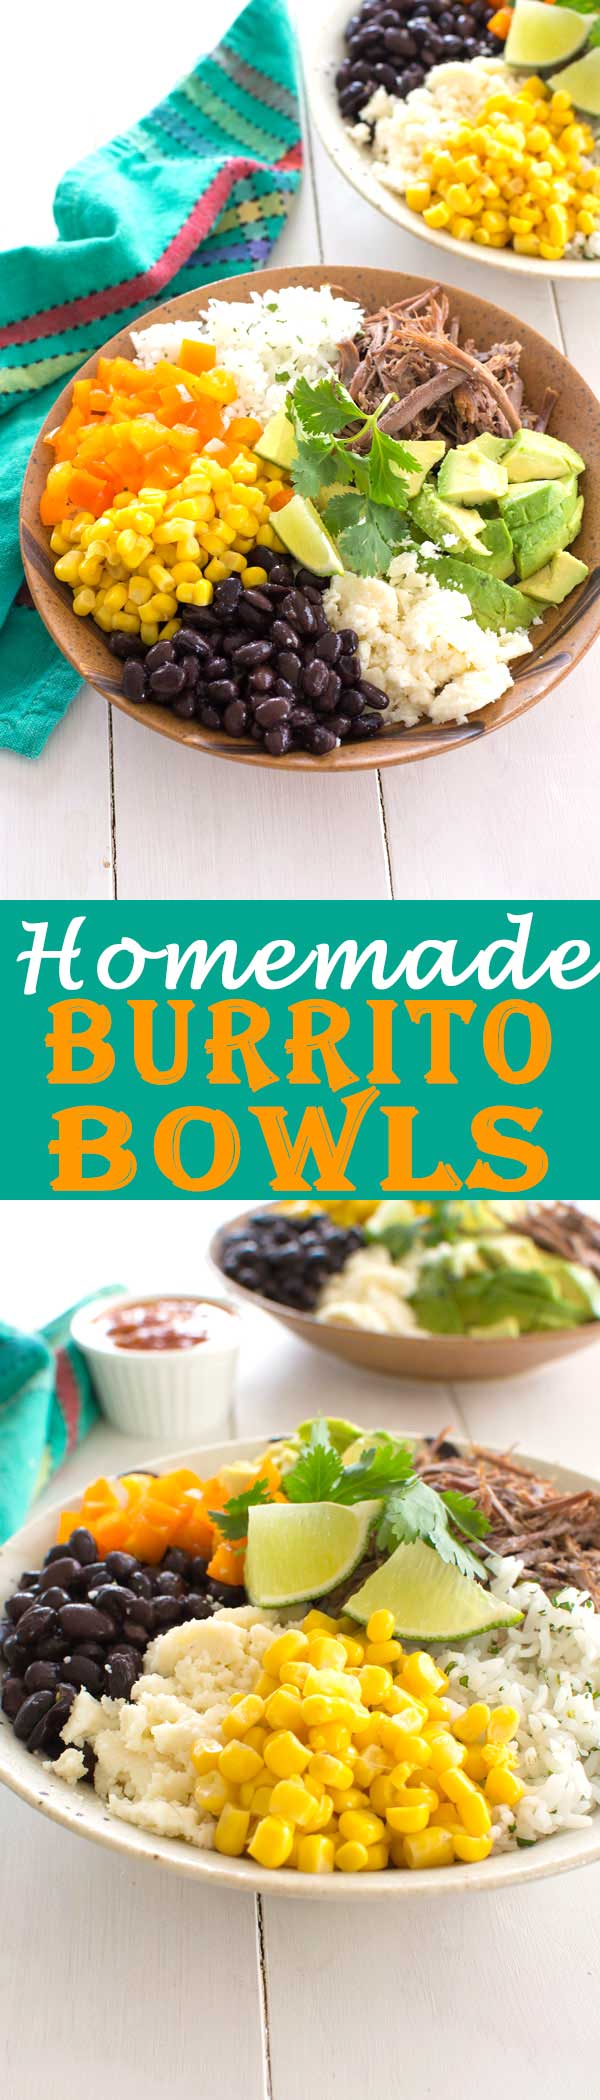 Skip the Chipotle burrito bowls and make your own homemade burrito bowl with chicken, pork, beef or veggies!